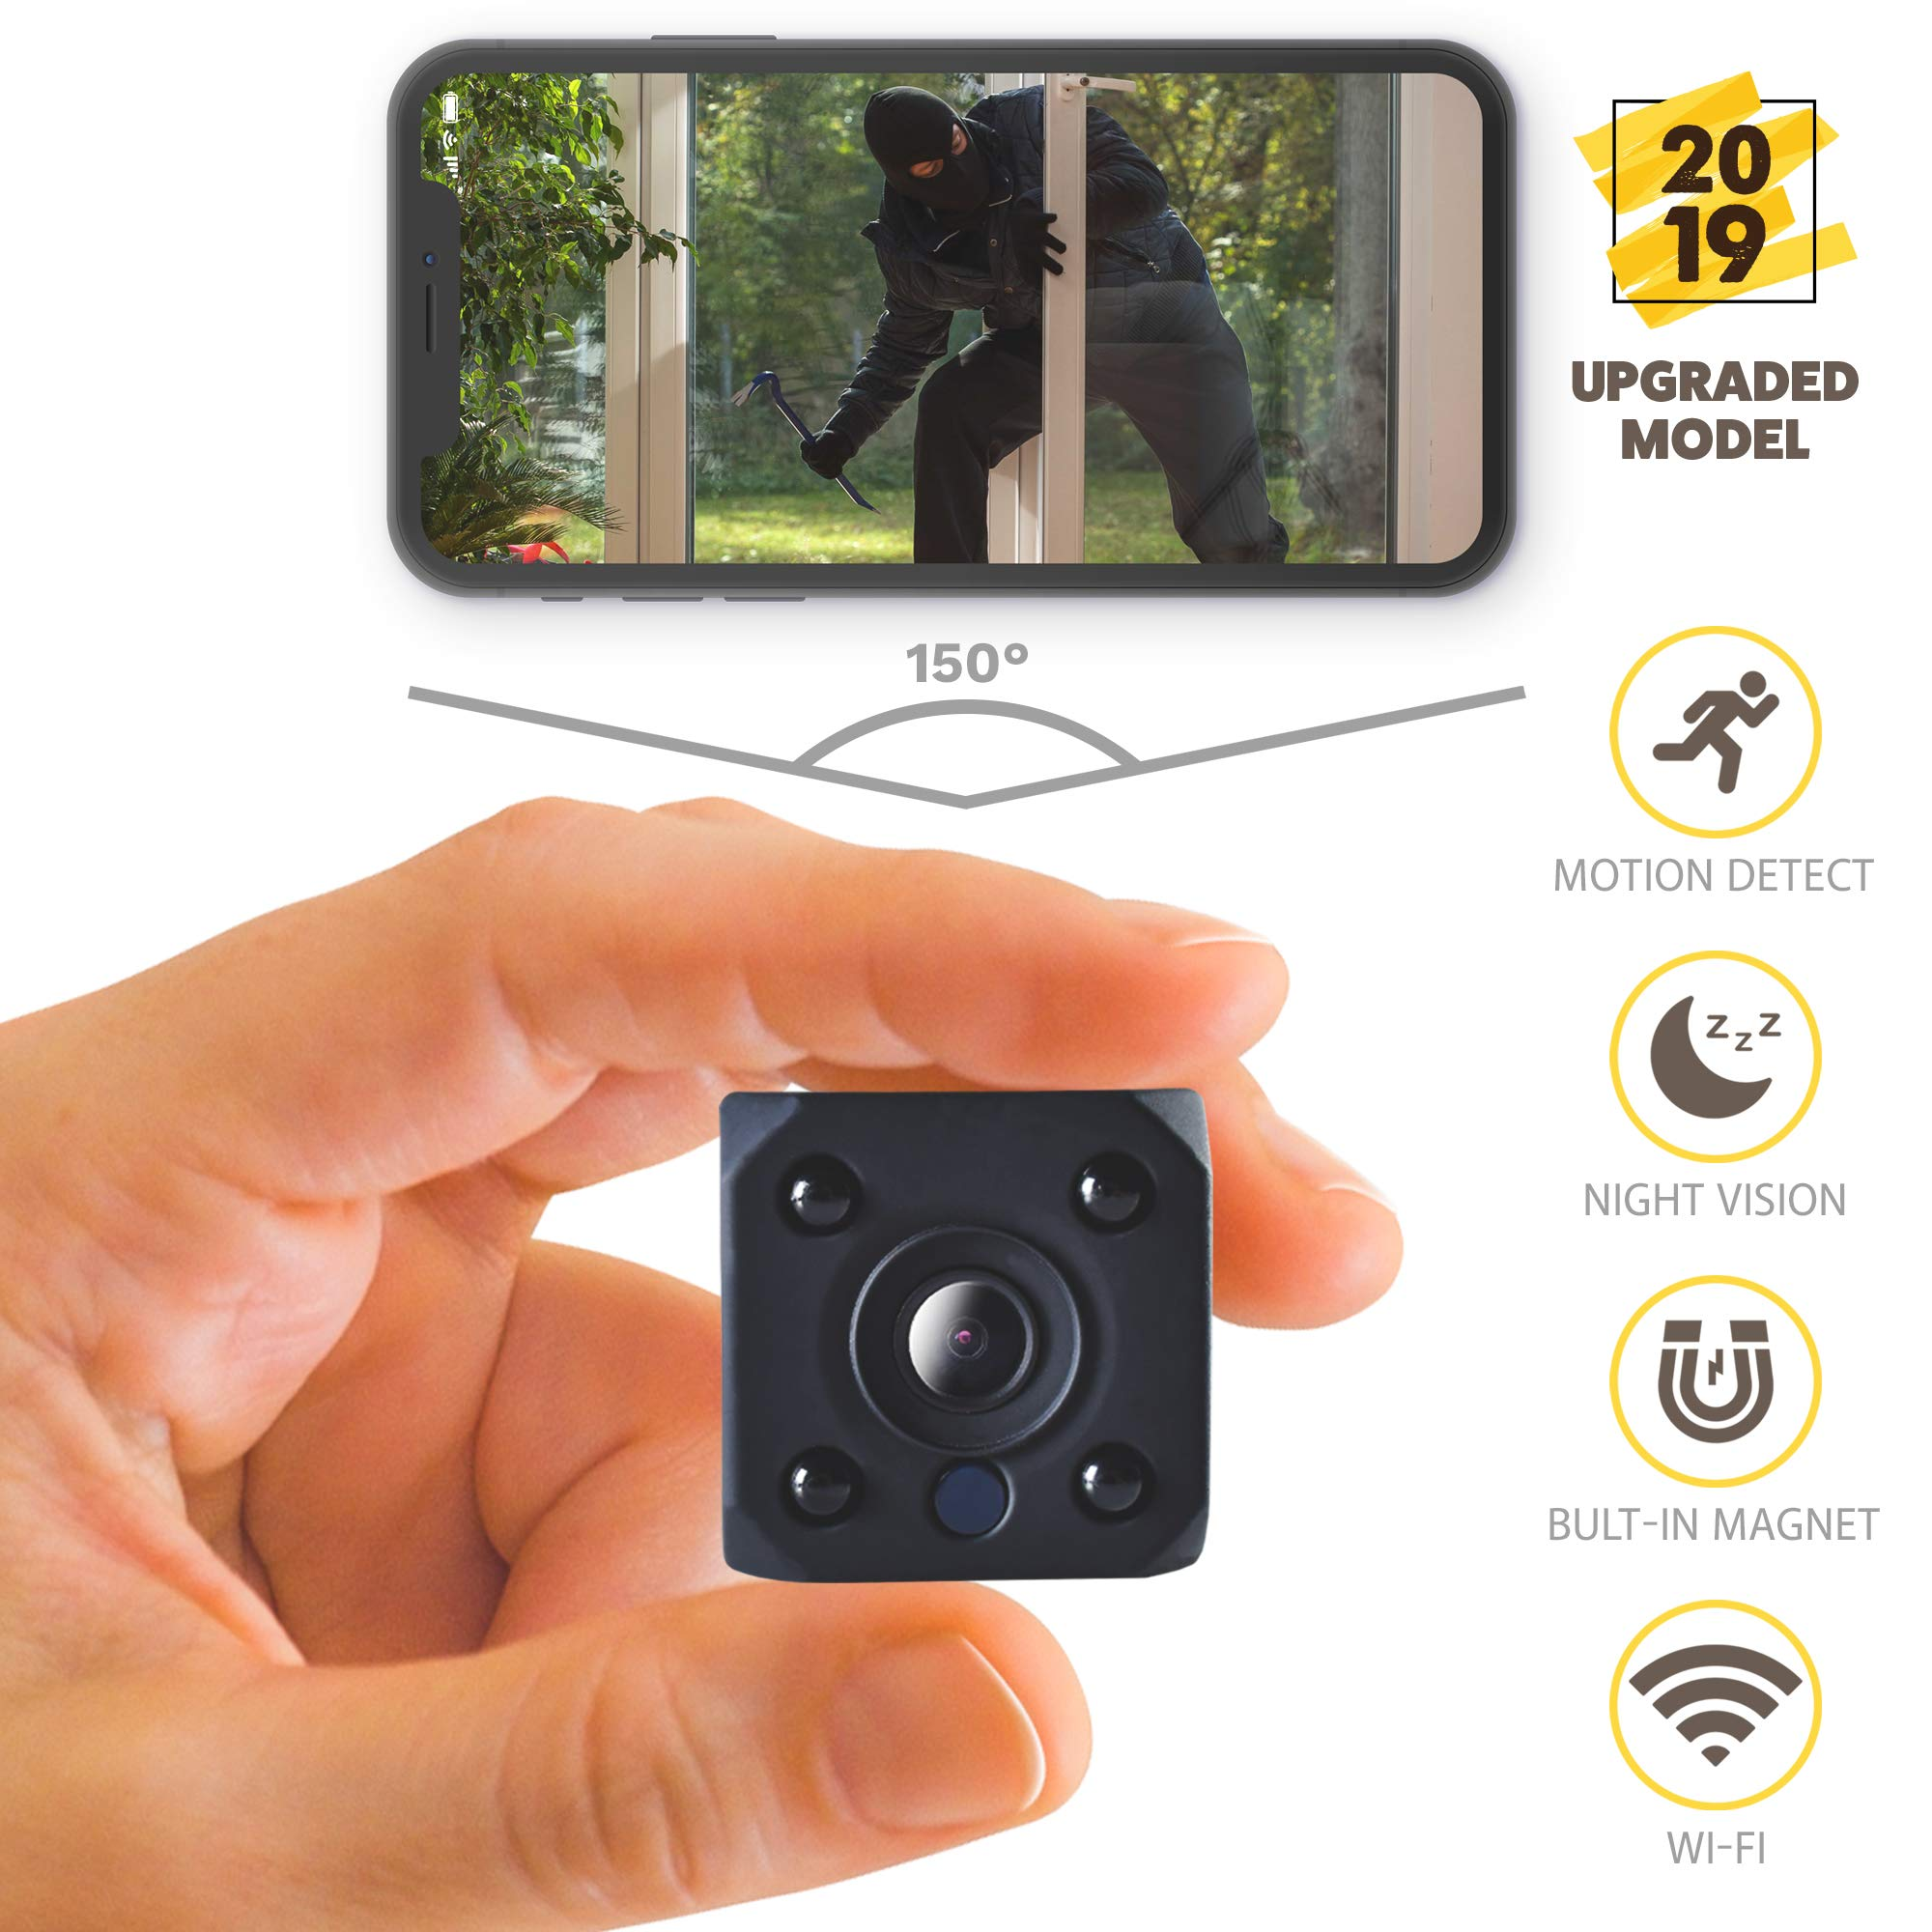 [2019 New] HD 1080P Mini Spy Camera Wireless Hidden Camera Small WiFi Home Security Cameras Night Vision - IP Nanny Cam Indoors Office Car Video Recorder Motion Activated Monitoring Recording Device